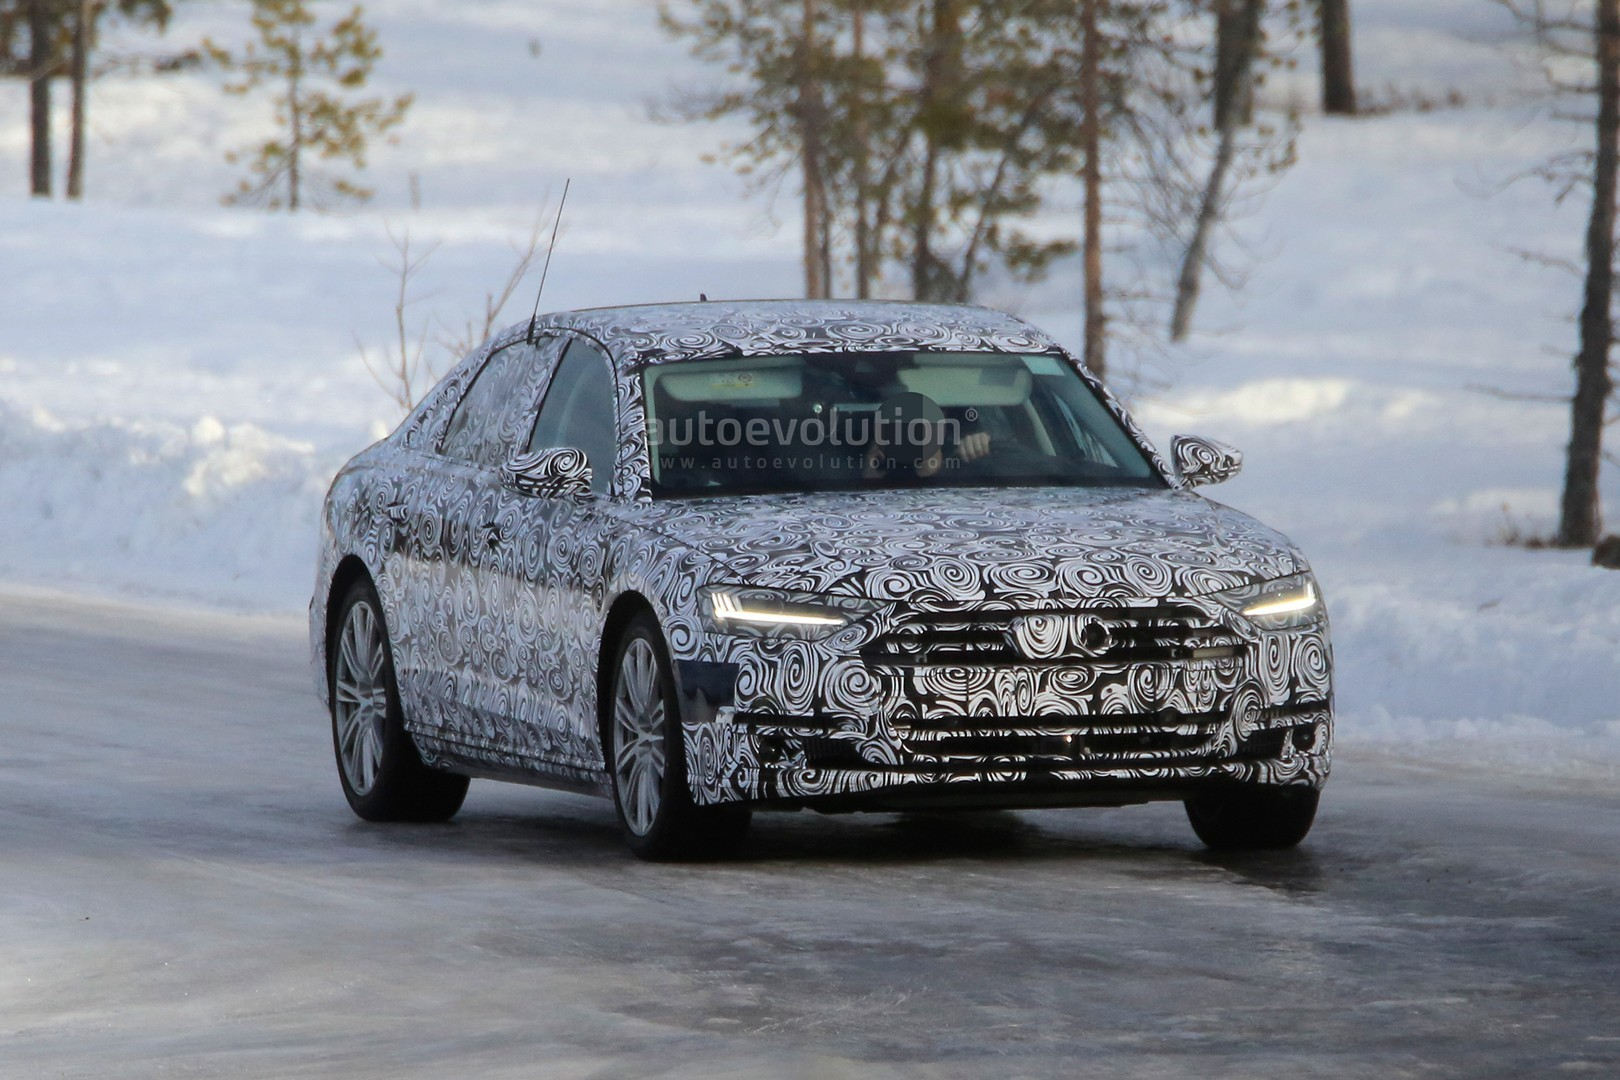 Audi Confirms 2018 A8 Debut Date For July 11, 2017 - autoevolution